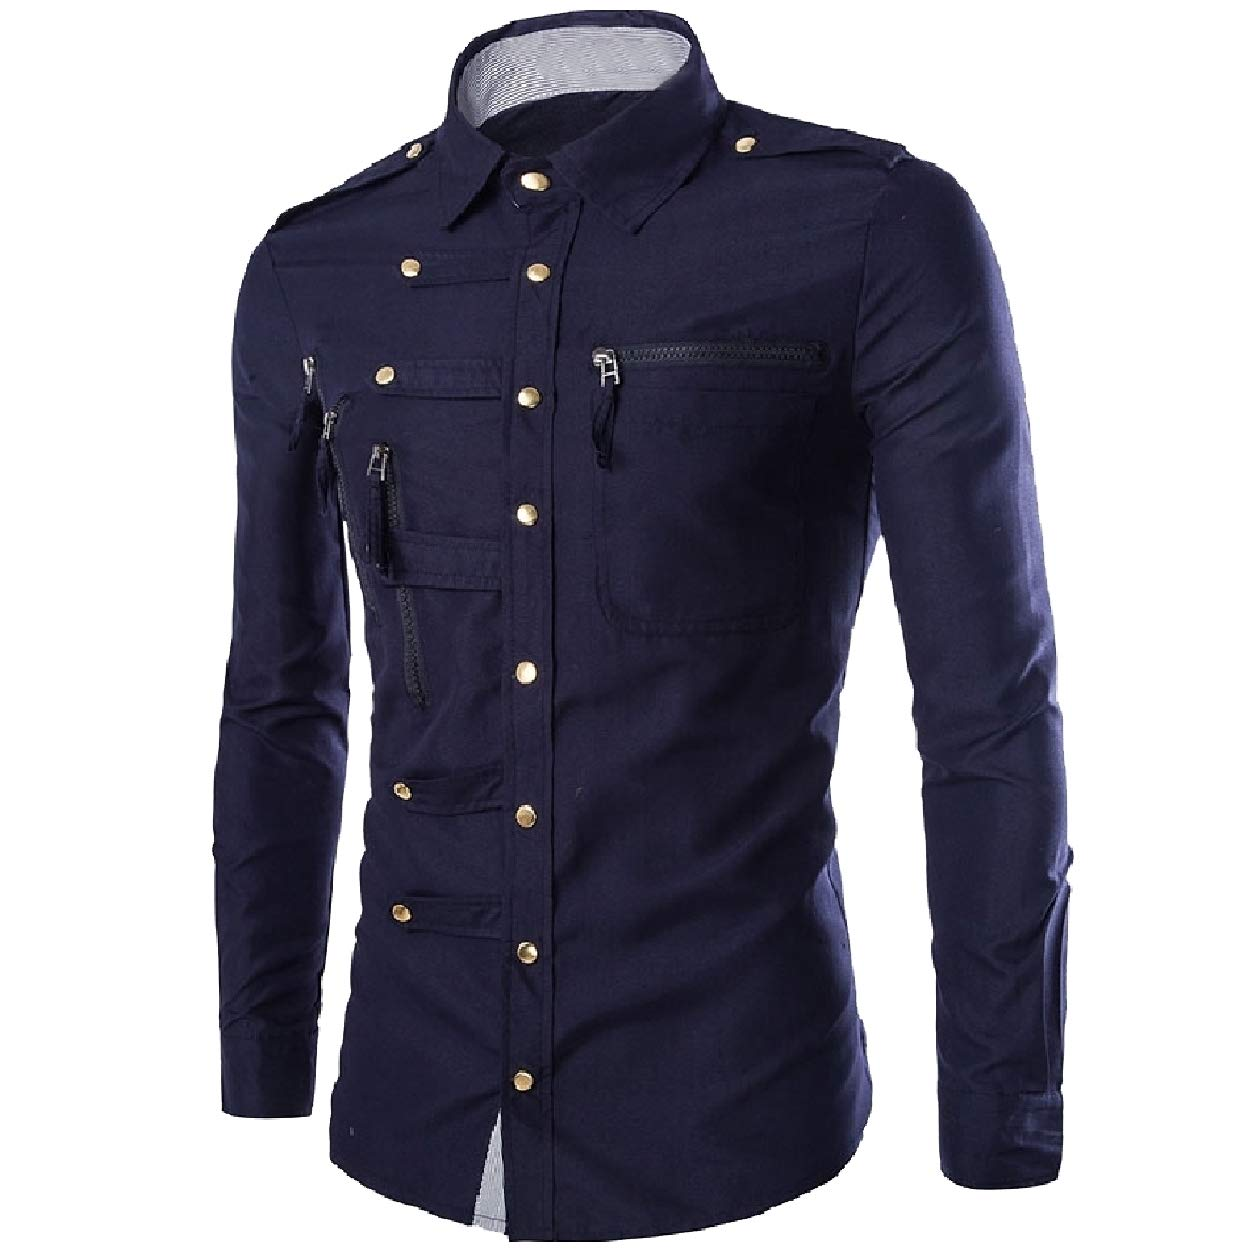 Abetteric Mens with Zips Slim Fit Button Down Long Sleeve Patchwork Shirts